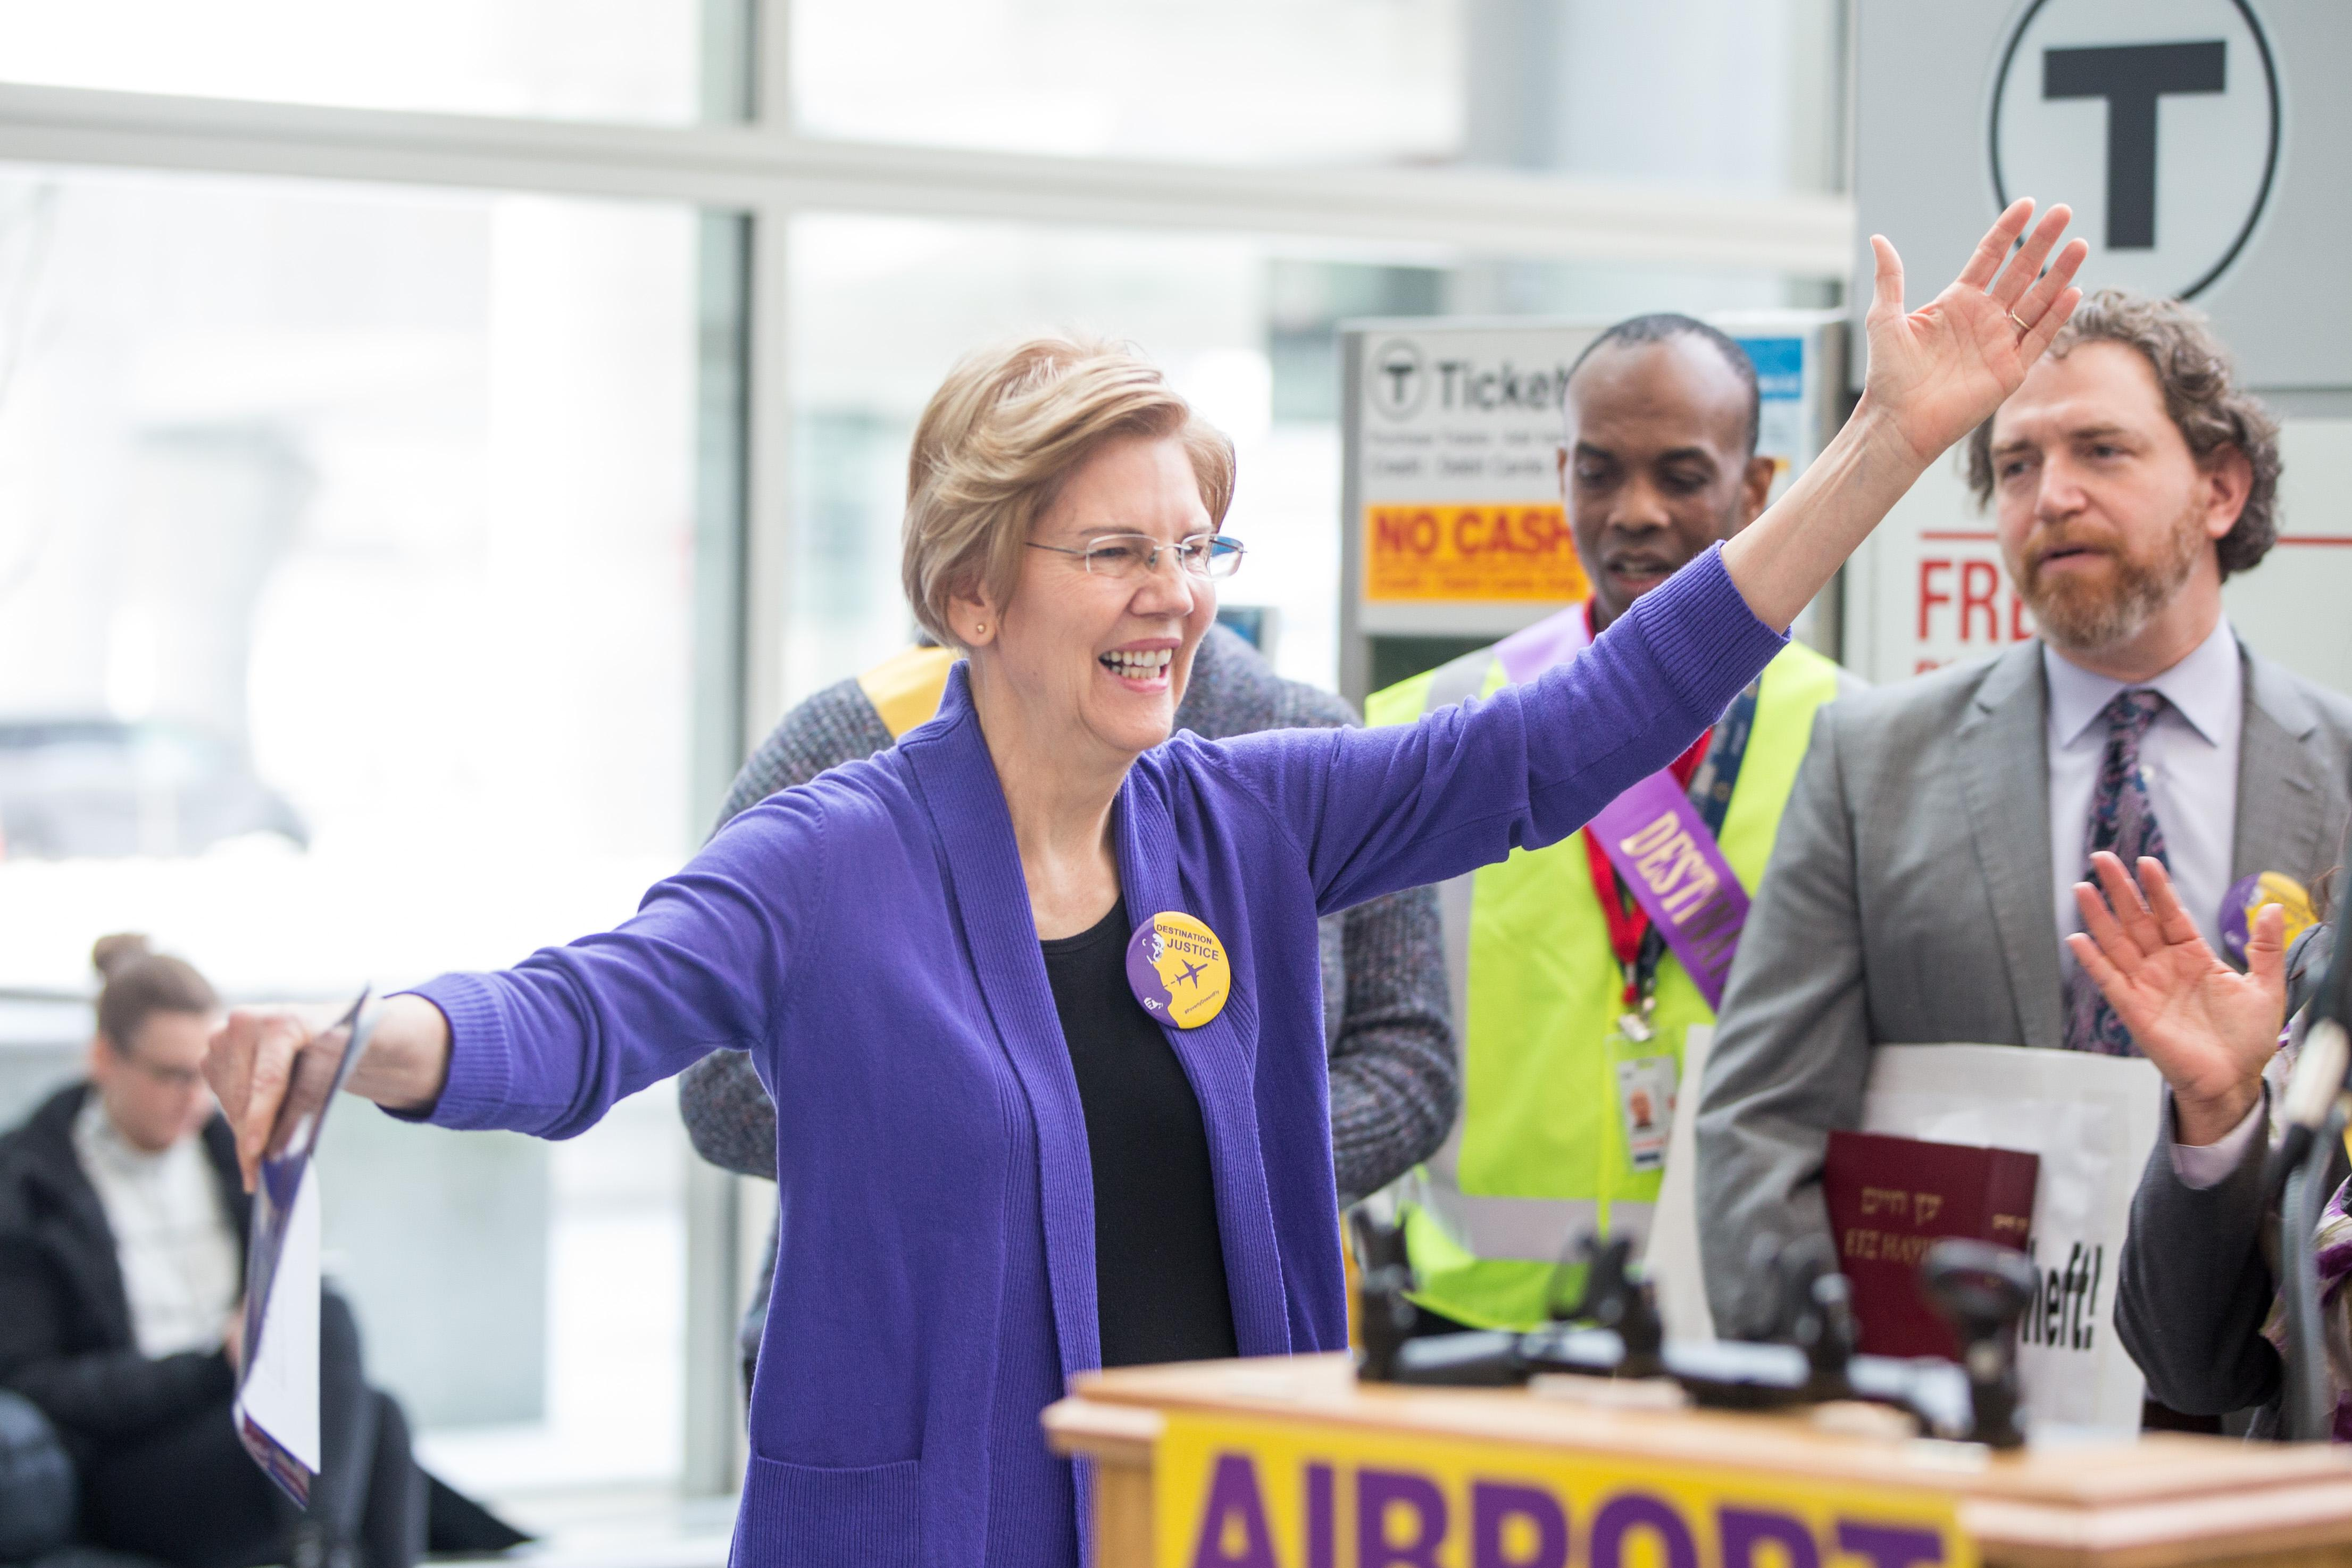 BOSTON, MA - JANUARY 21:  Sen. Elizabeth Warren (D-MA), attends a rally for airport workers affected by the government shutdown at Boston Logan International Airport on January 21, 2019 in Boston, Massachusetts.  As the partial government shutdown enters its fifth week, the stalemate between President Donald Trump and congressional Democrats continues as they cannot come to a bipartisan solution on border security.  (Photo by Scott Eisen/Getty Images)